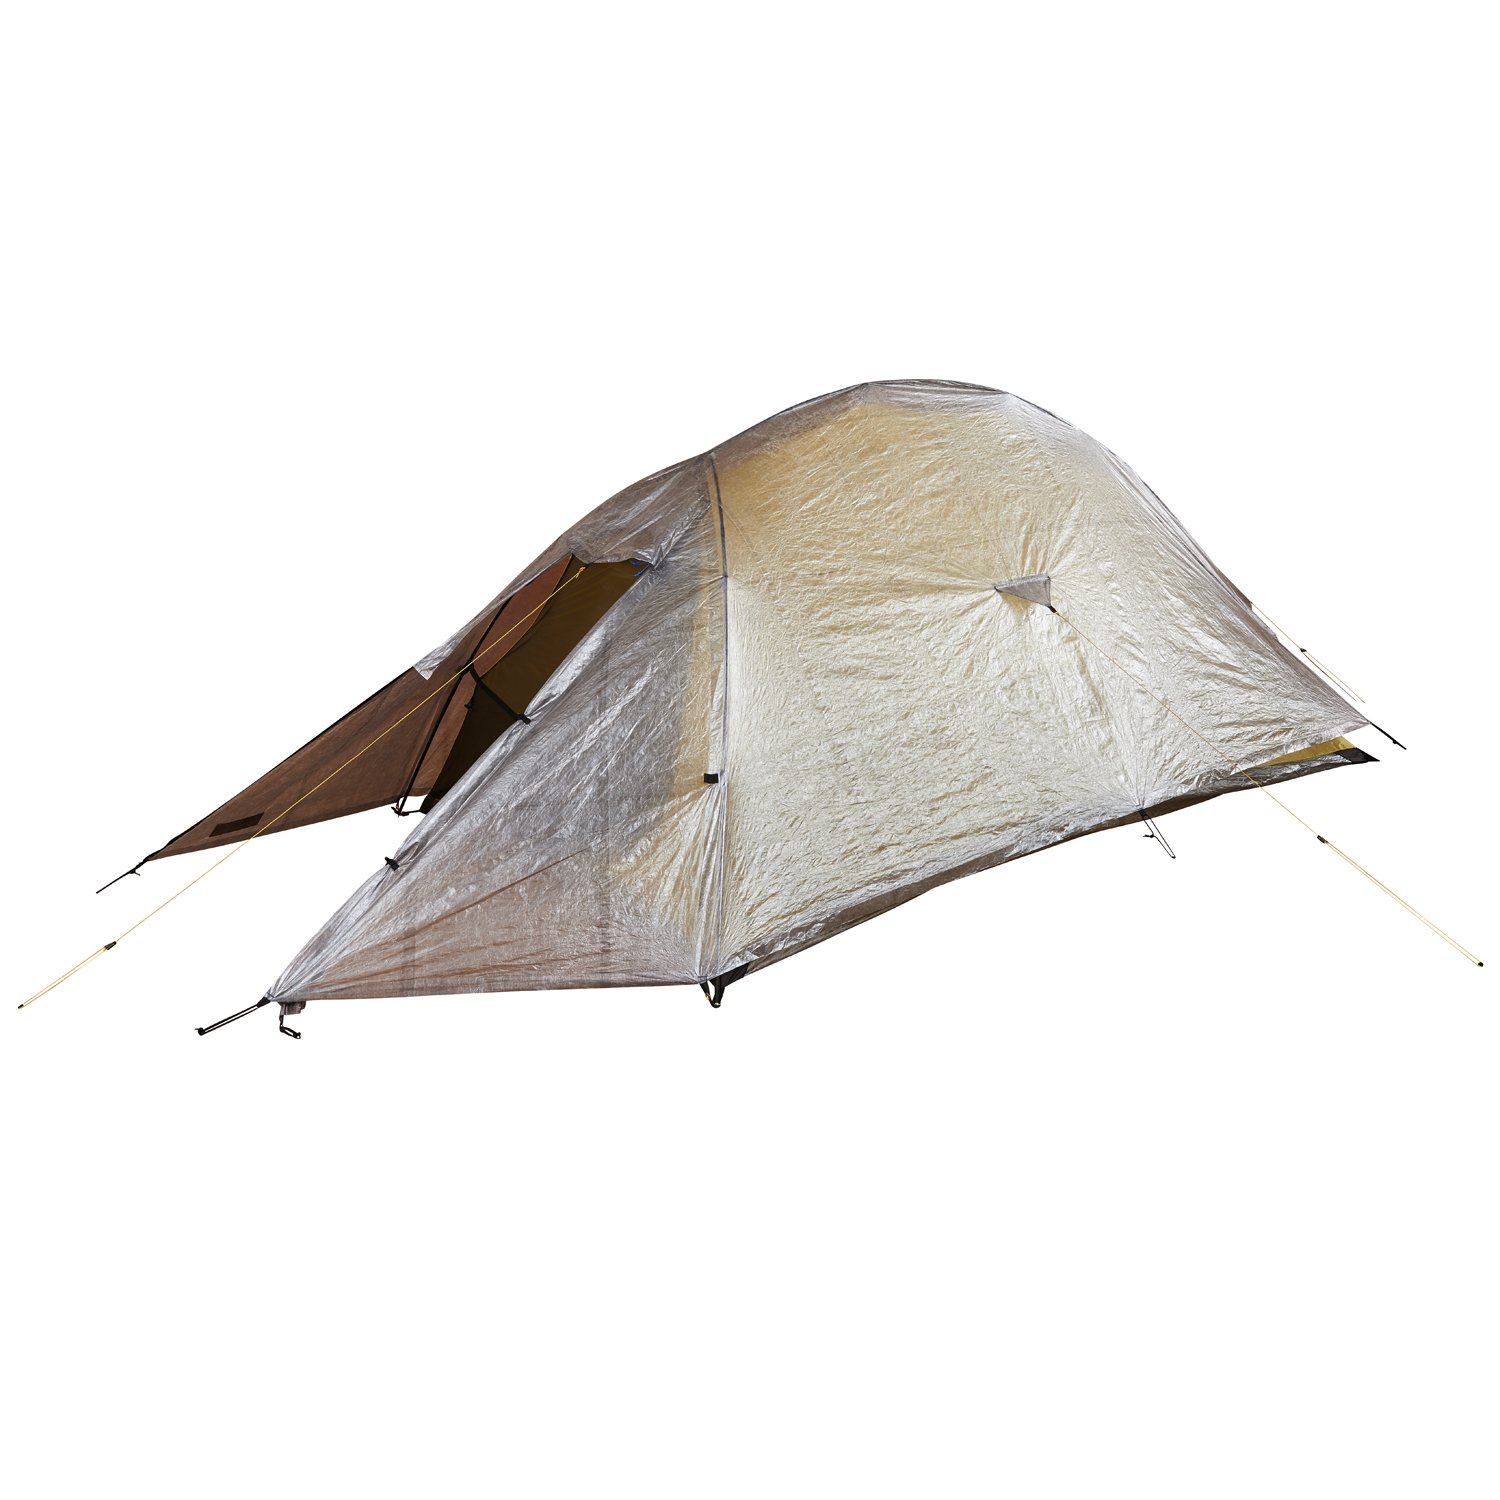 Solar Ultra 2 Tent  sc 1 st  Terra Nova Equipment & Solar Ultra 2 Tent - Terra Nova Equipment